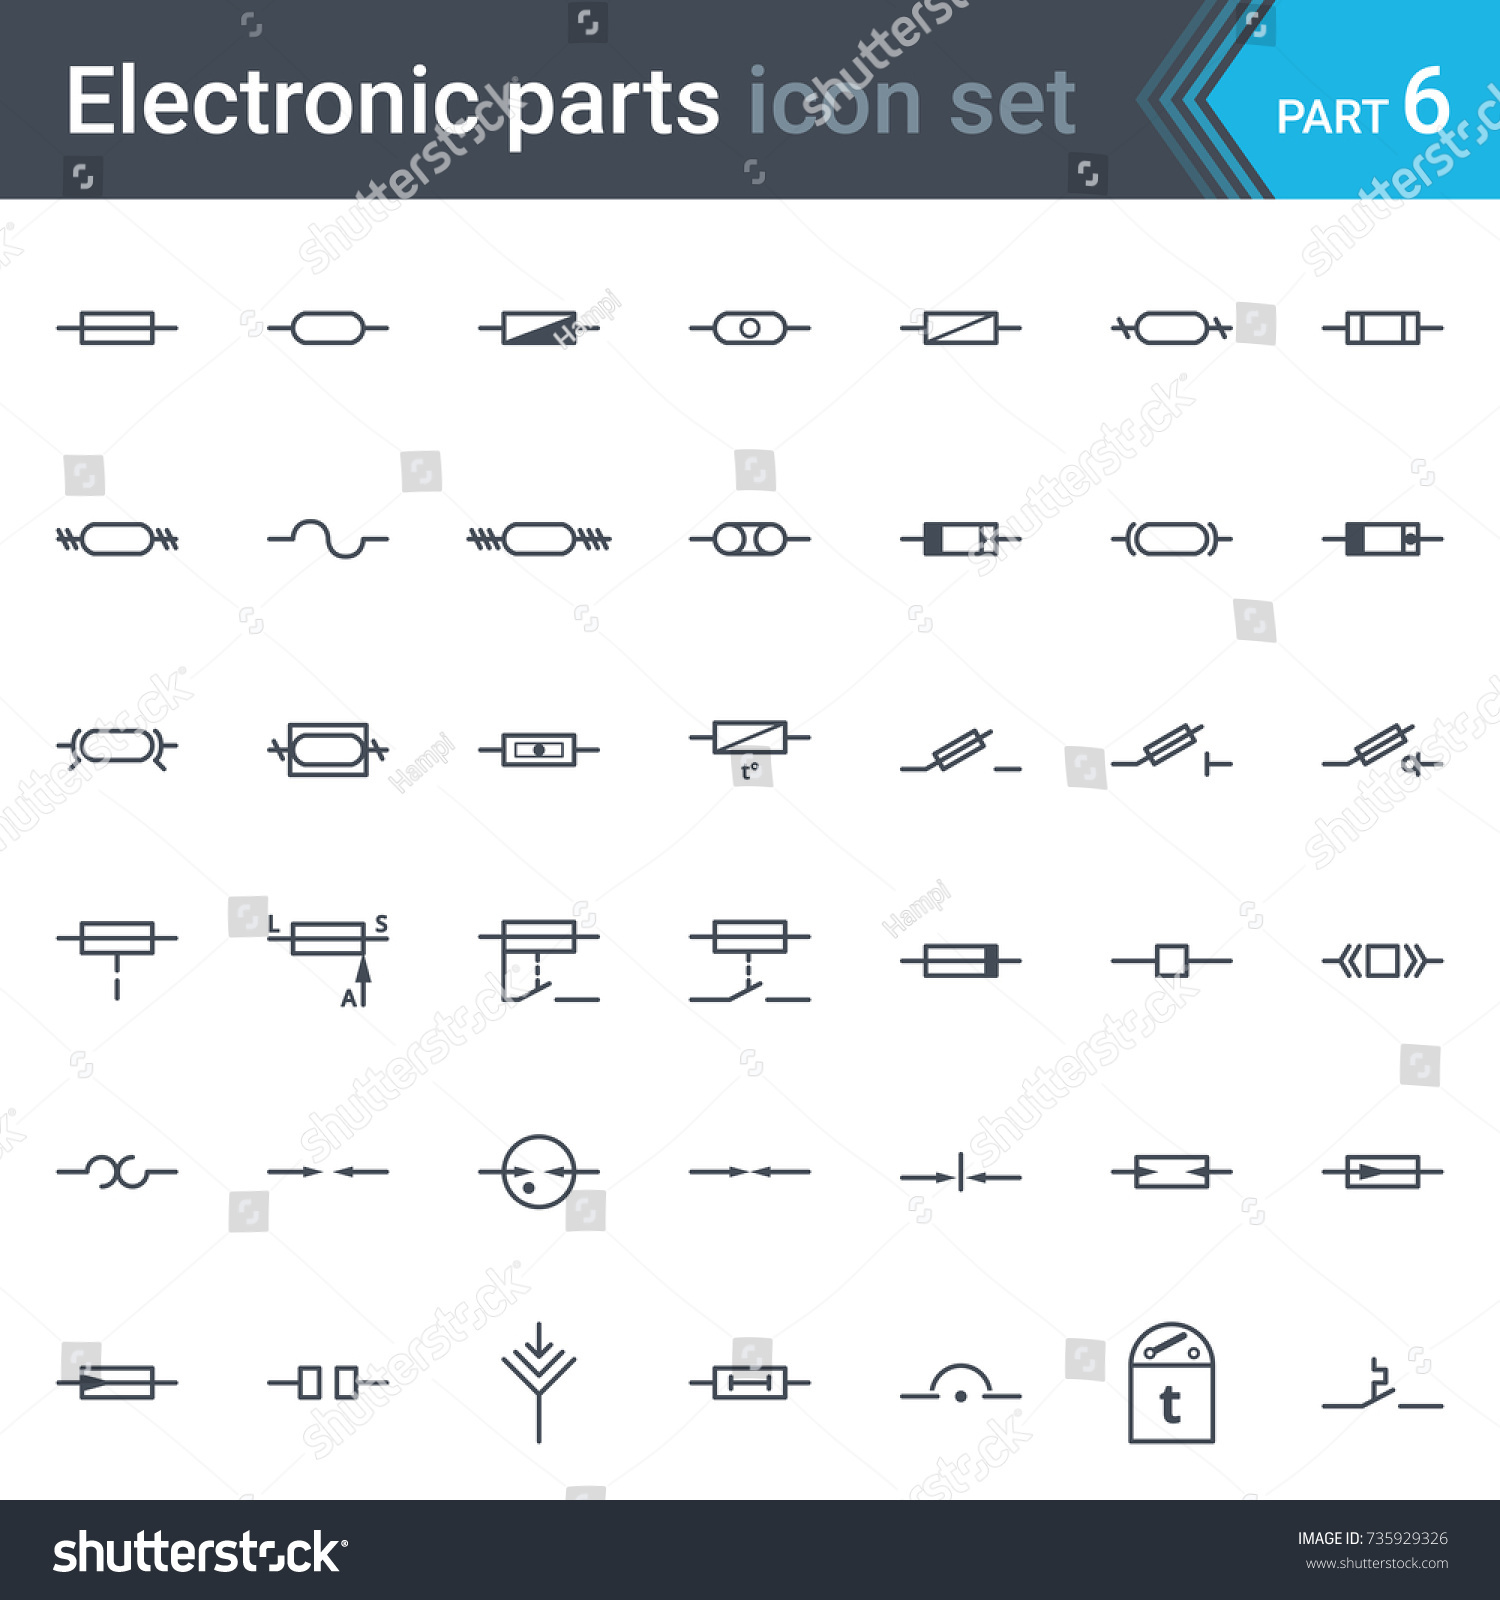 Complete Vector Set Electric Electronic Circuit Stock Electrical Bus Symbol Schematics What Does This Indicate Of And Diagram Symbols Elements Fuses